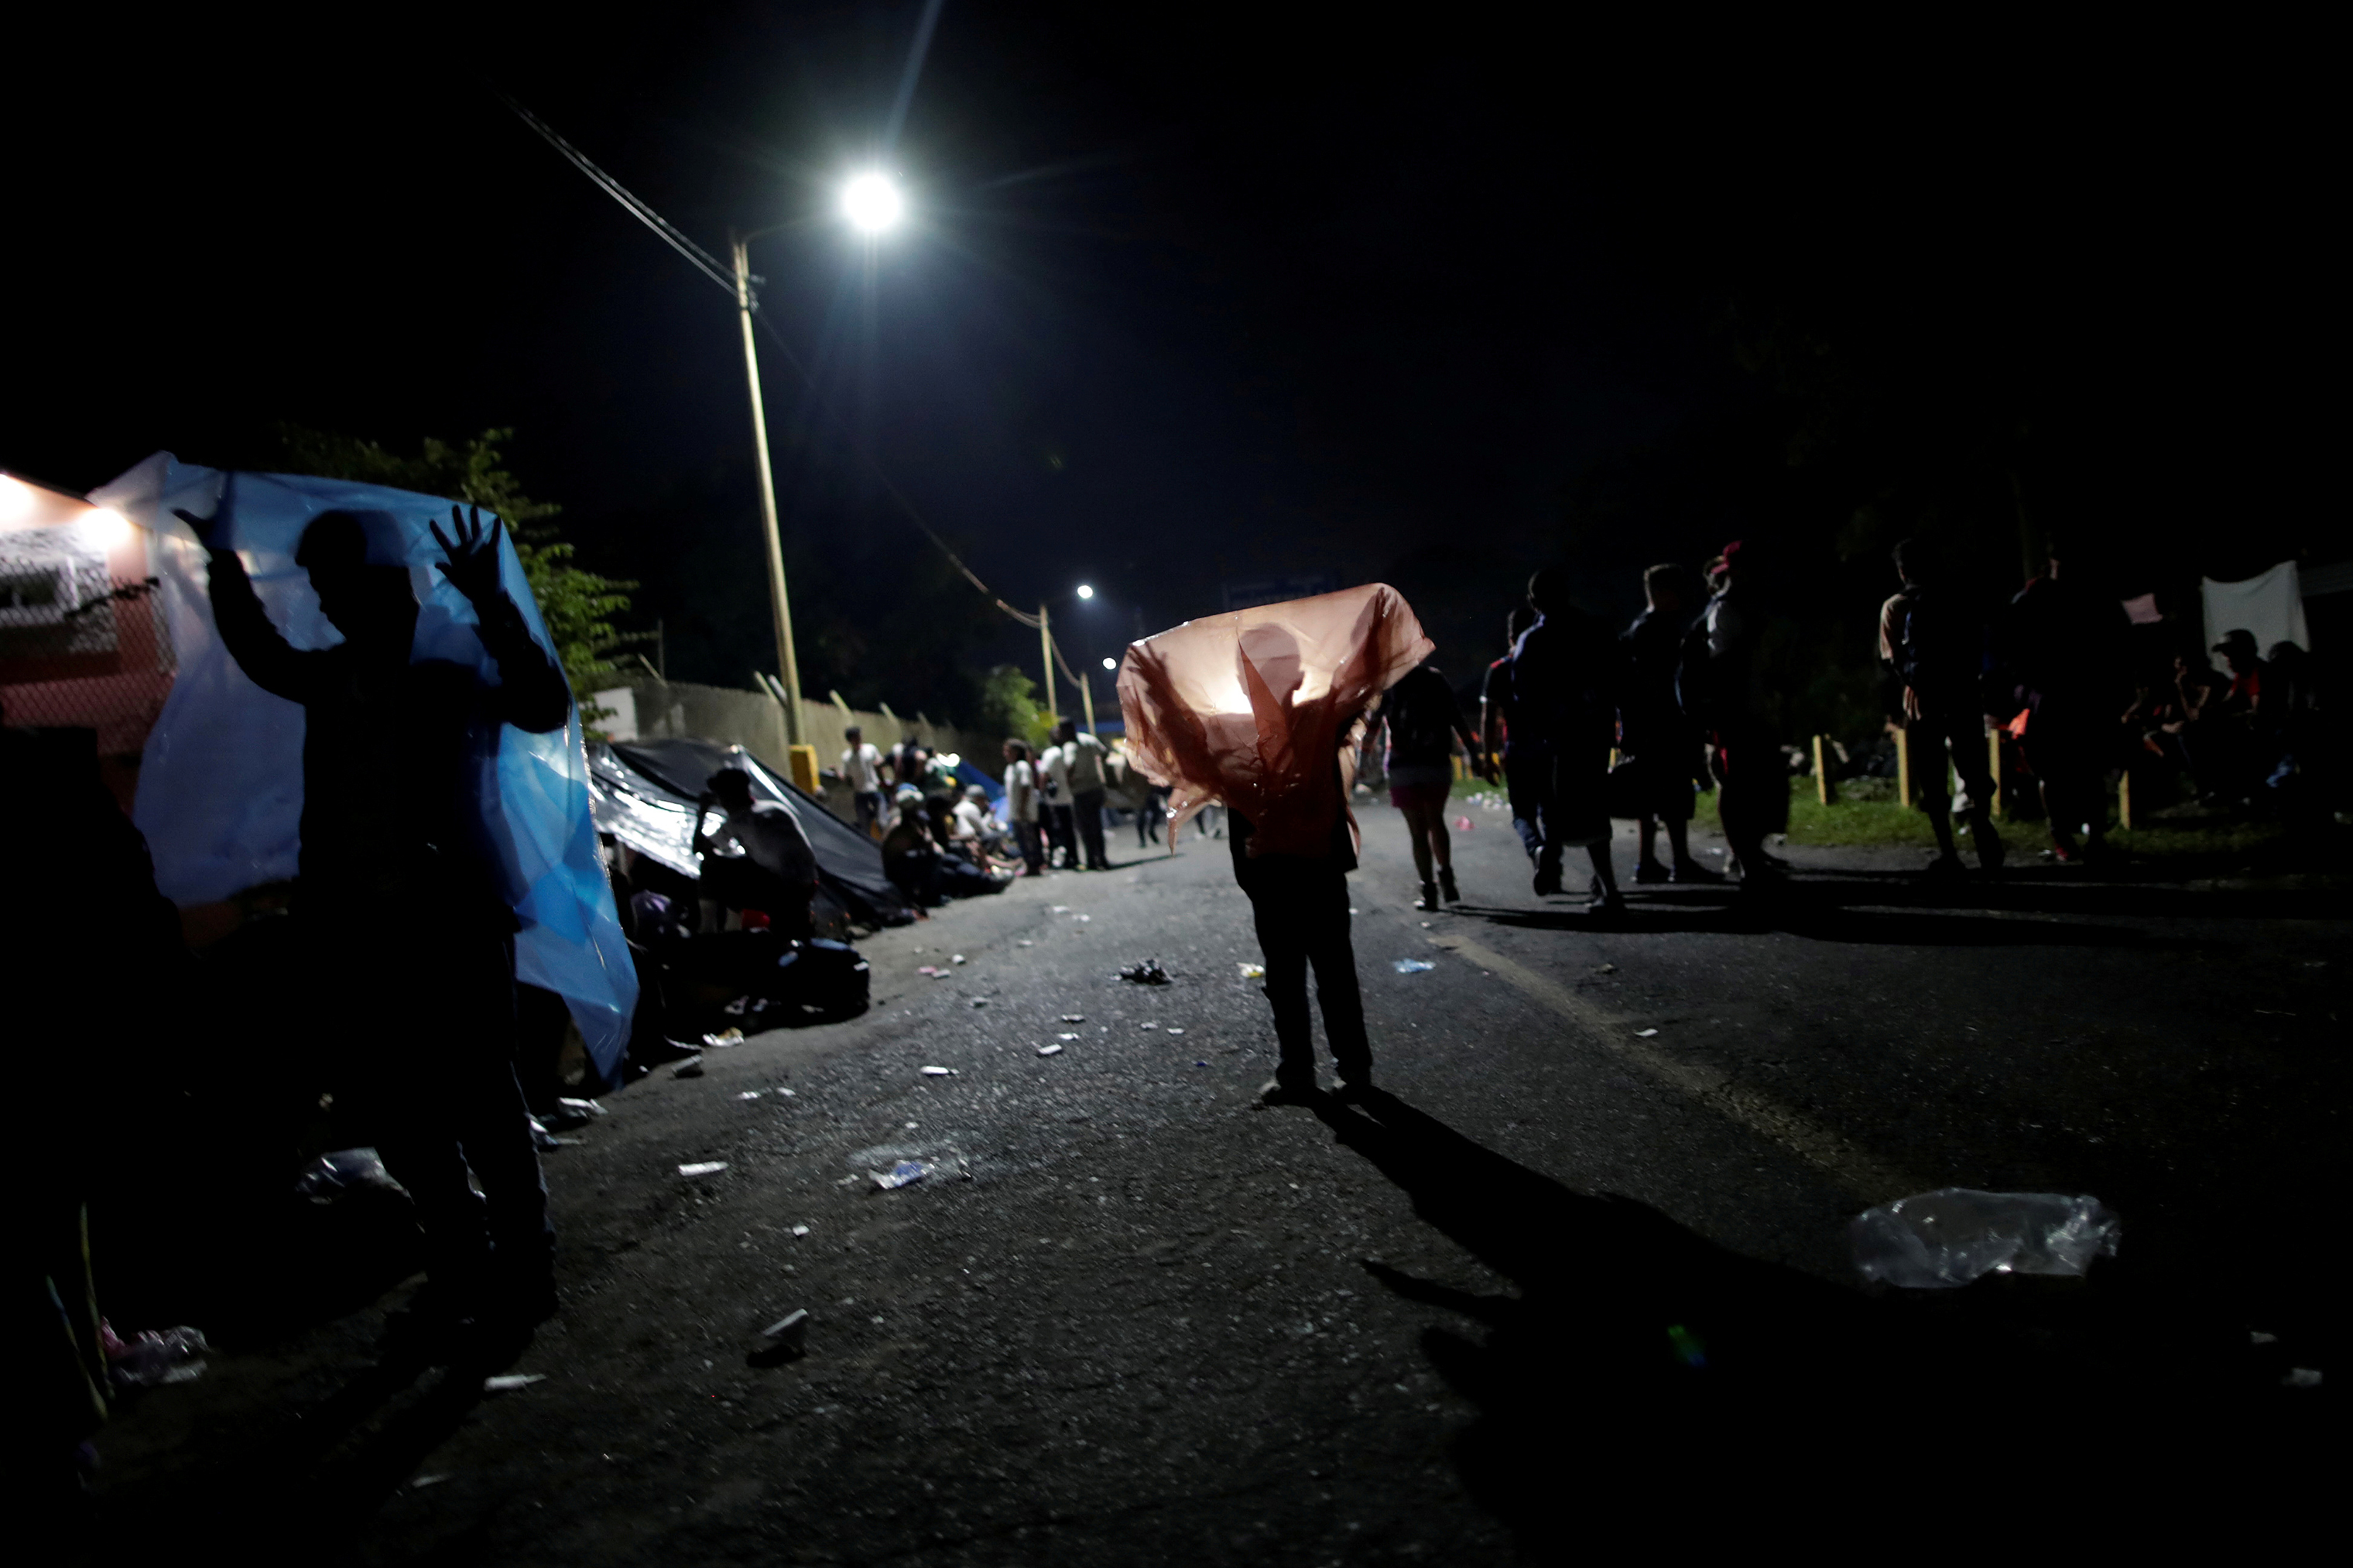 Honduran migrants play with plastic bags on the bridge that connects Mexico and Guatemala in Ciudad Hidalgo, Mexico, on Oct. 19.